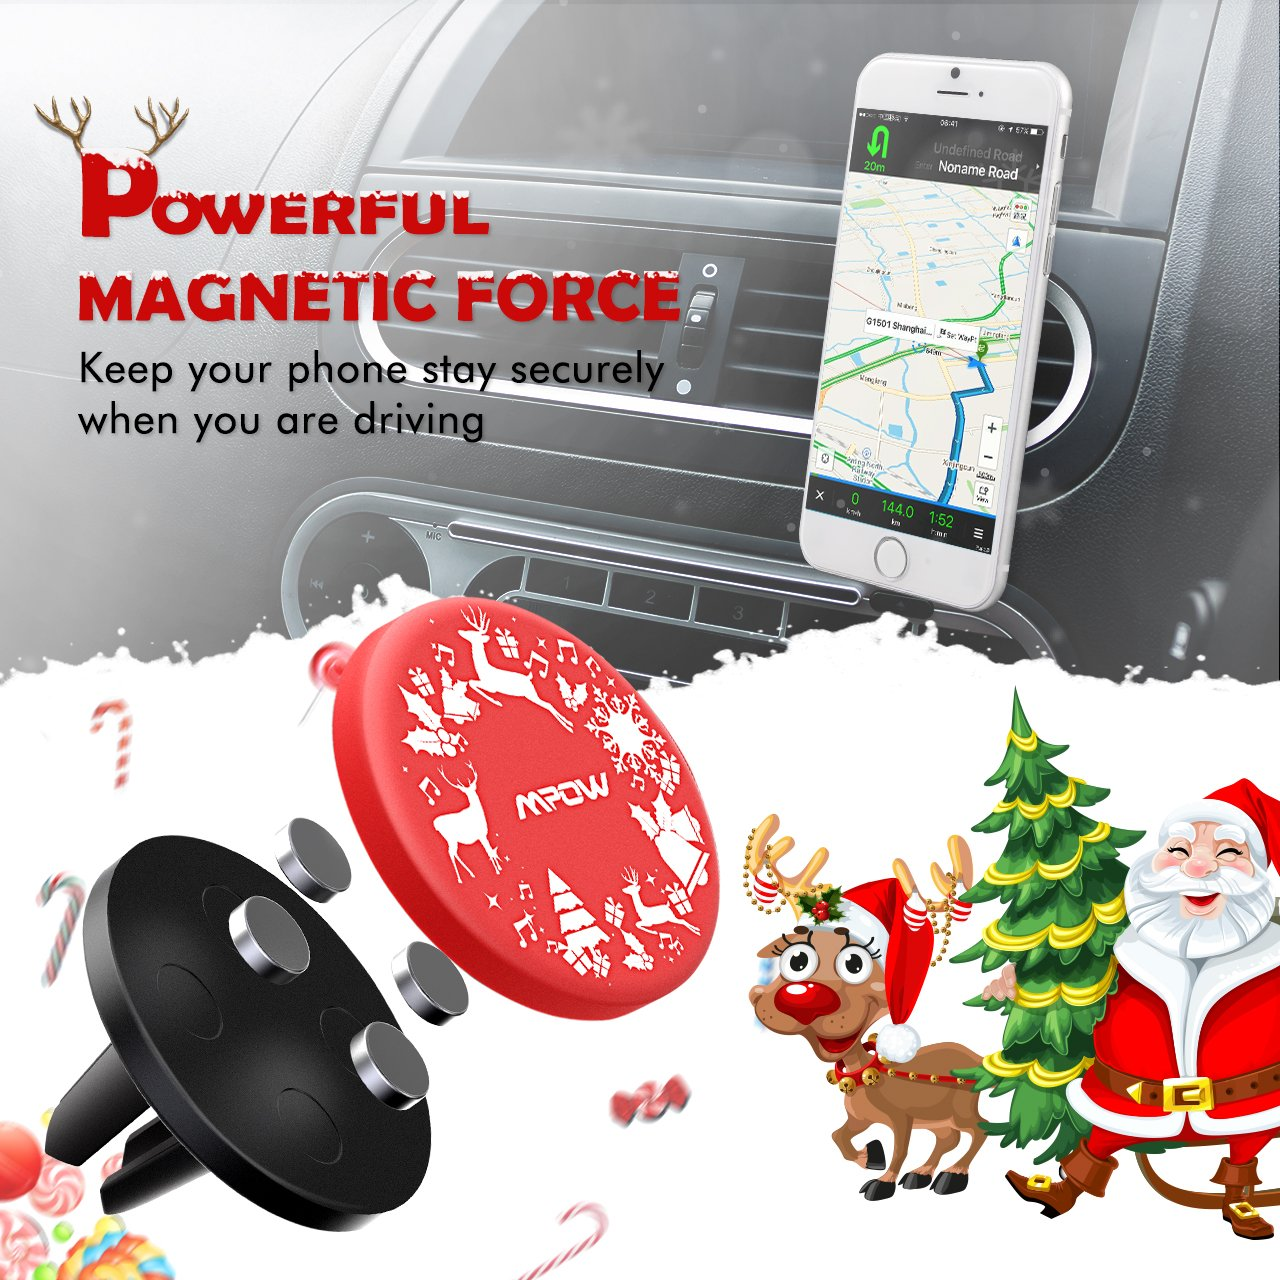 Galaxy S6//S7//S8 Huawei etc 4351530605 Universal Air Vent Car Phone Mount with Strong Magnet Car Holder for iPhone X//XS//XS MAX//XR//8//8Plus//7//7Plus//6s Mpow Magnetic Car Phone Mount with Christmas Santa Google